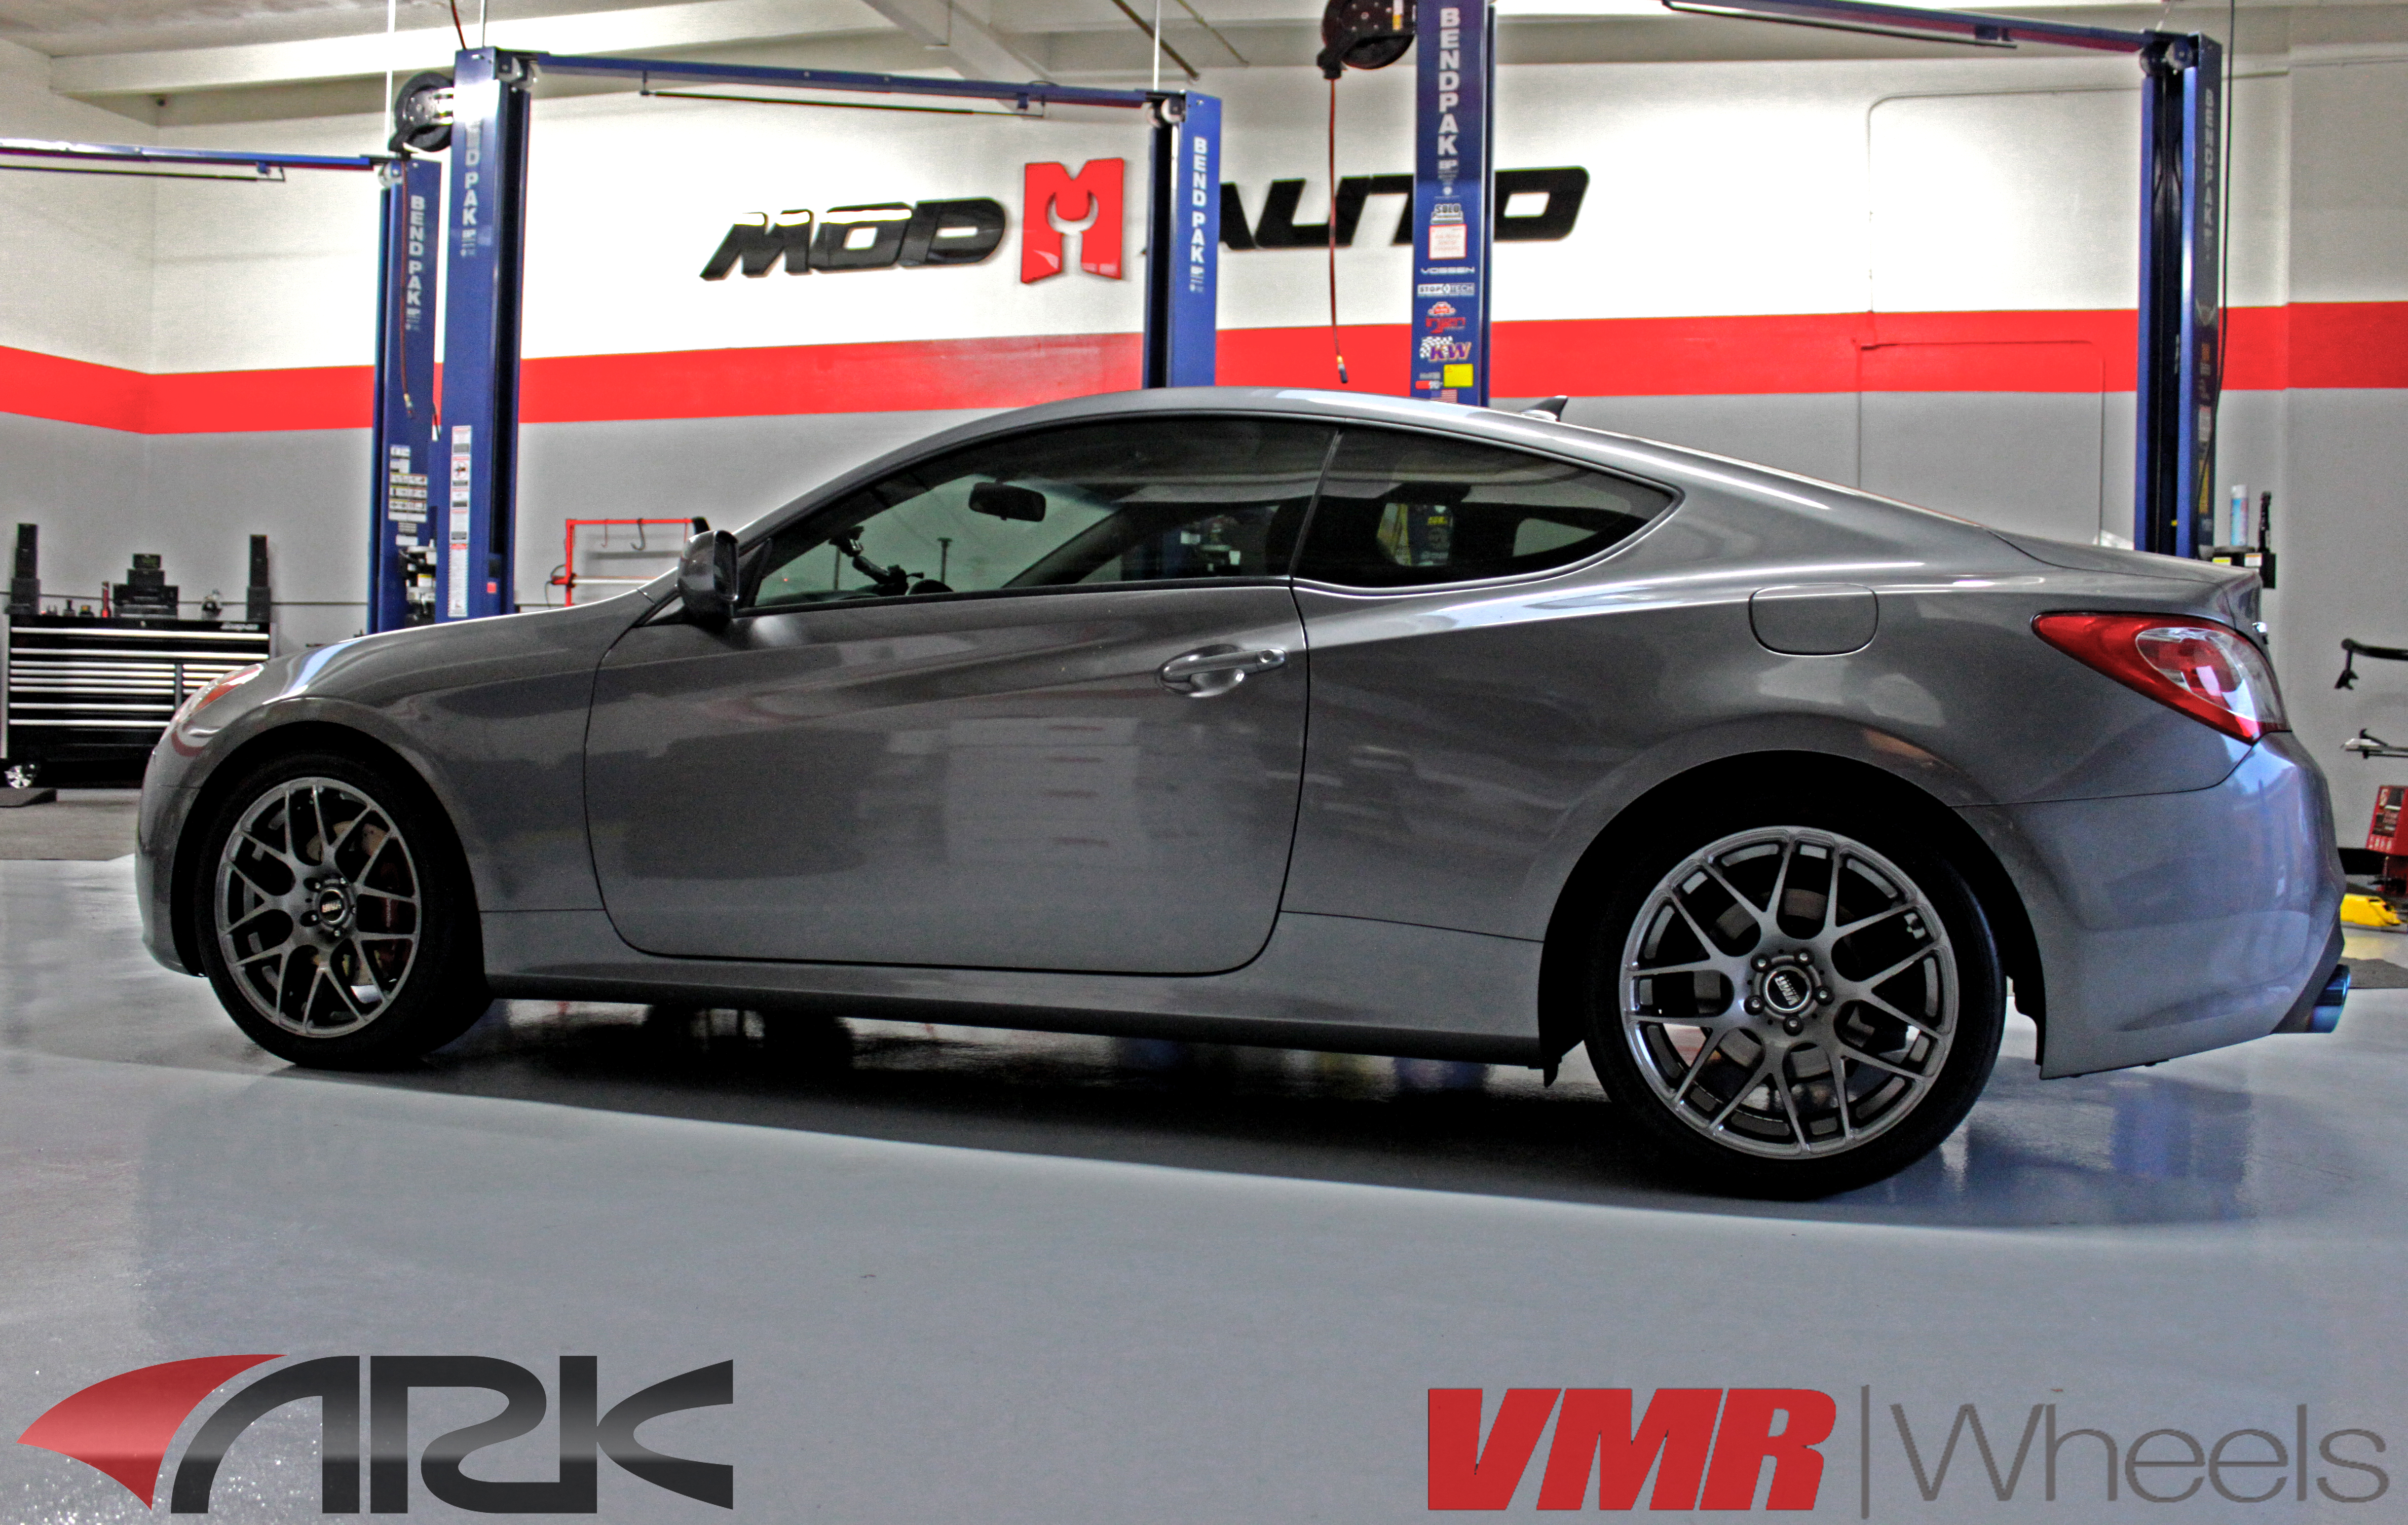 Hyundai Genesis Coupe 20t Vmr V710 Ark Exhaust 4: 2013 Genesis Coupe 3 8 Exhaust At Woreks.co